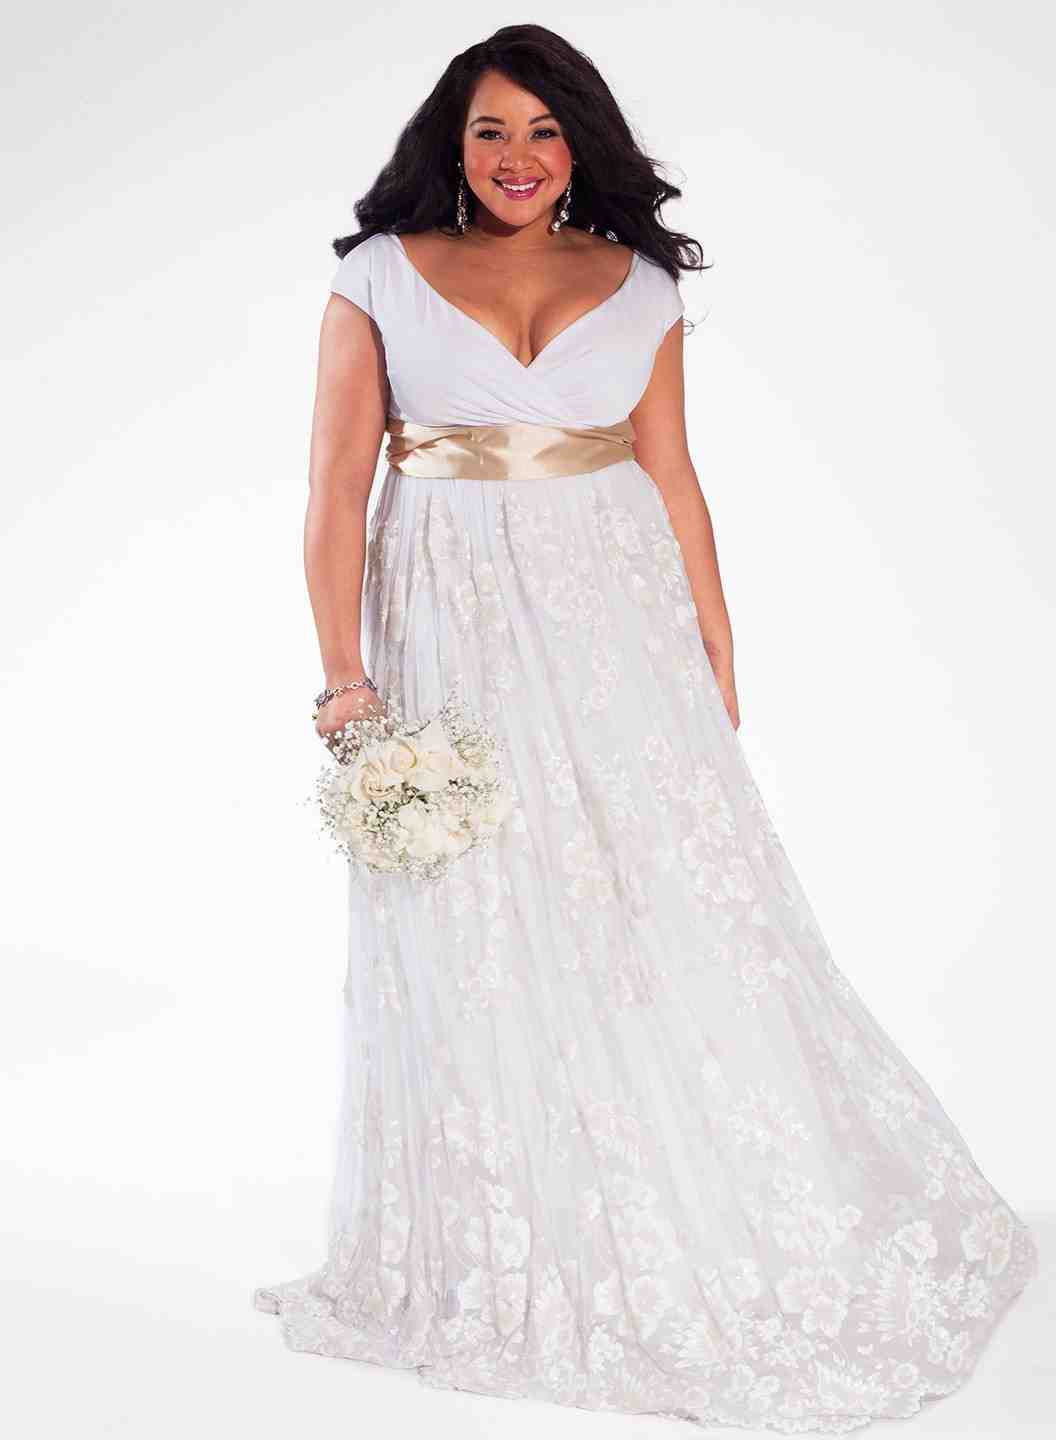 Plus size wedding dresses how to choose to flatter your for Wedding dress plus size